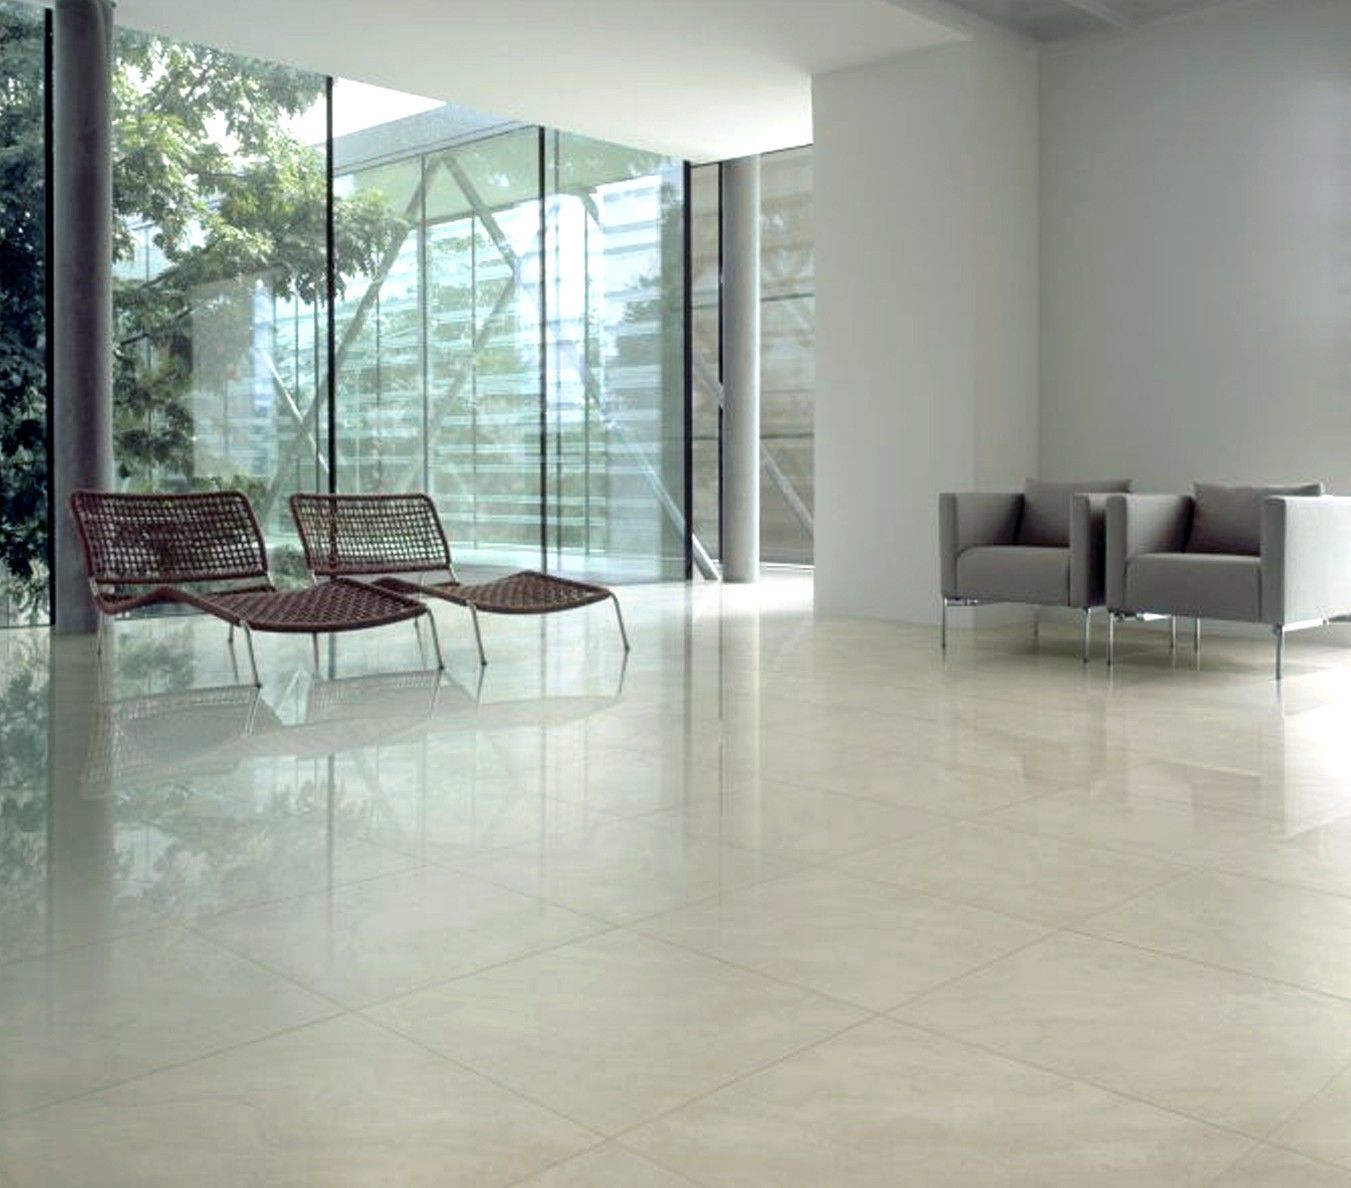 60x60 viscount beige polished floor tiles tile choice floors 60x60 viscount beige polished floor tiles tile choice dailygadgetfo Image collections